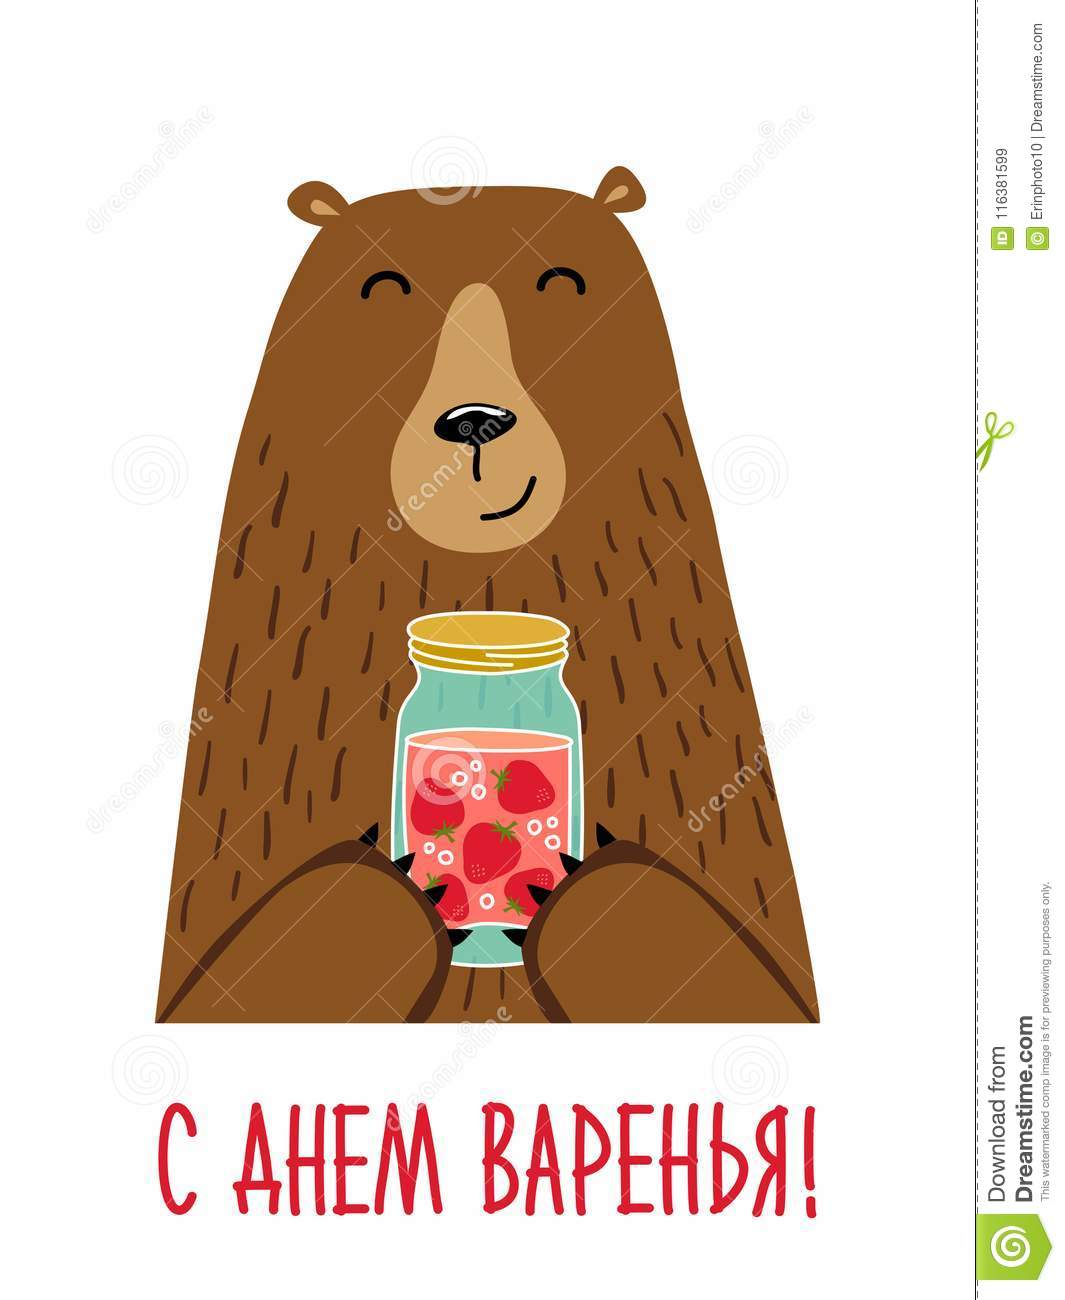 Cute Birthday Greeting Card With Funny Cartoon Character Of Hand Drawn Bear And Text In Russian Language